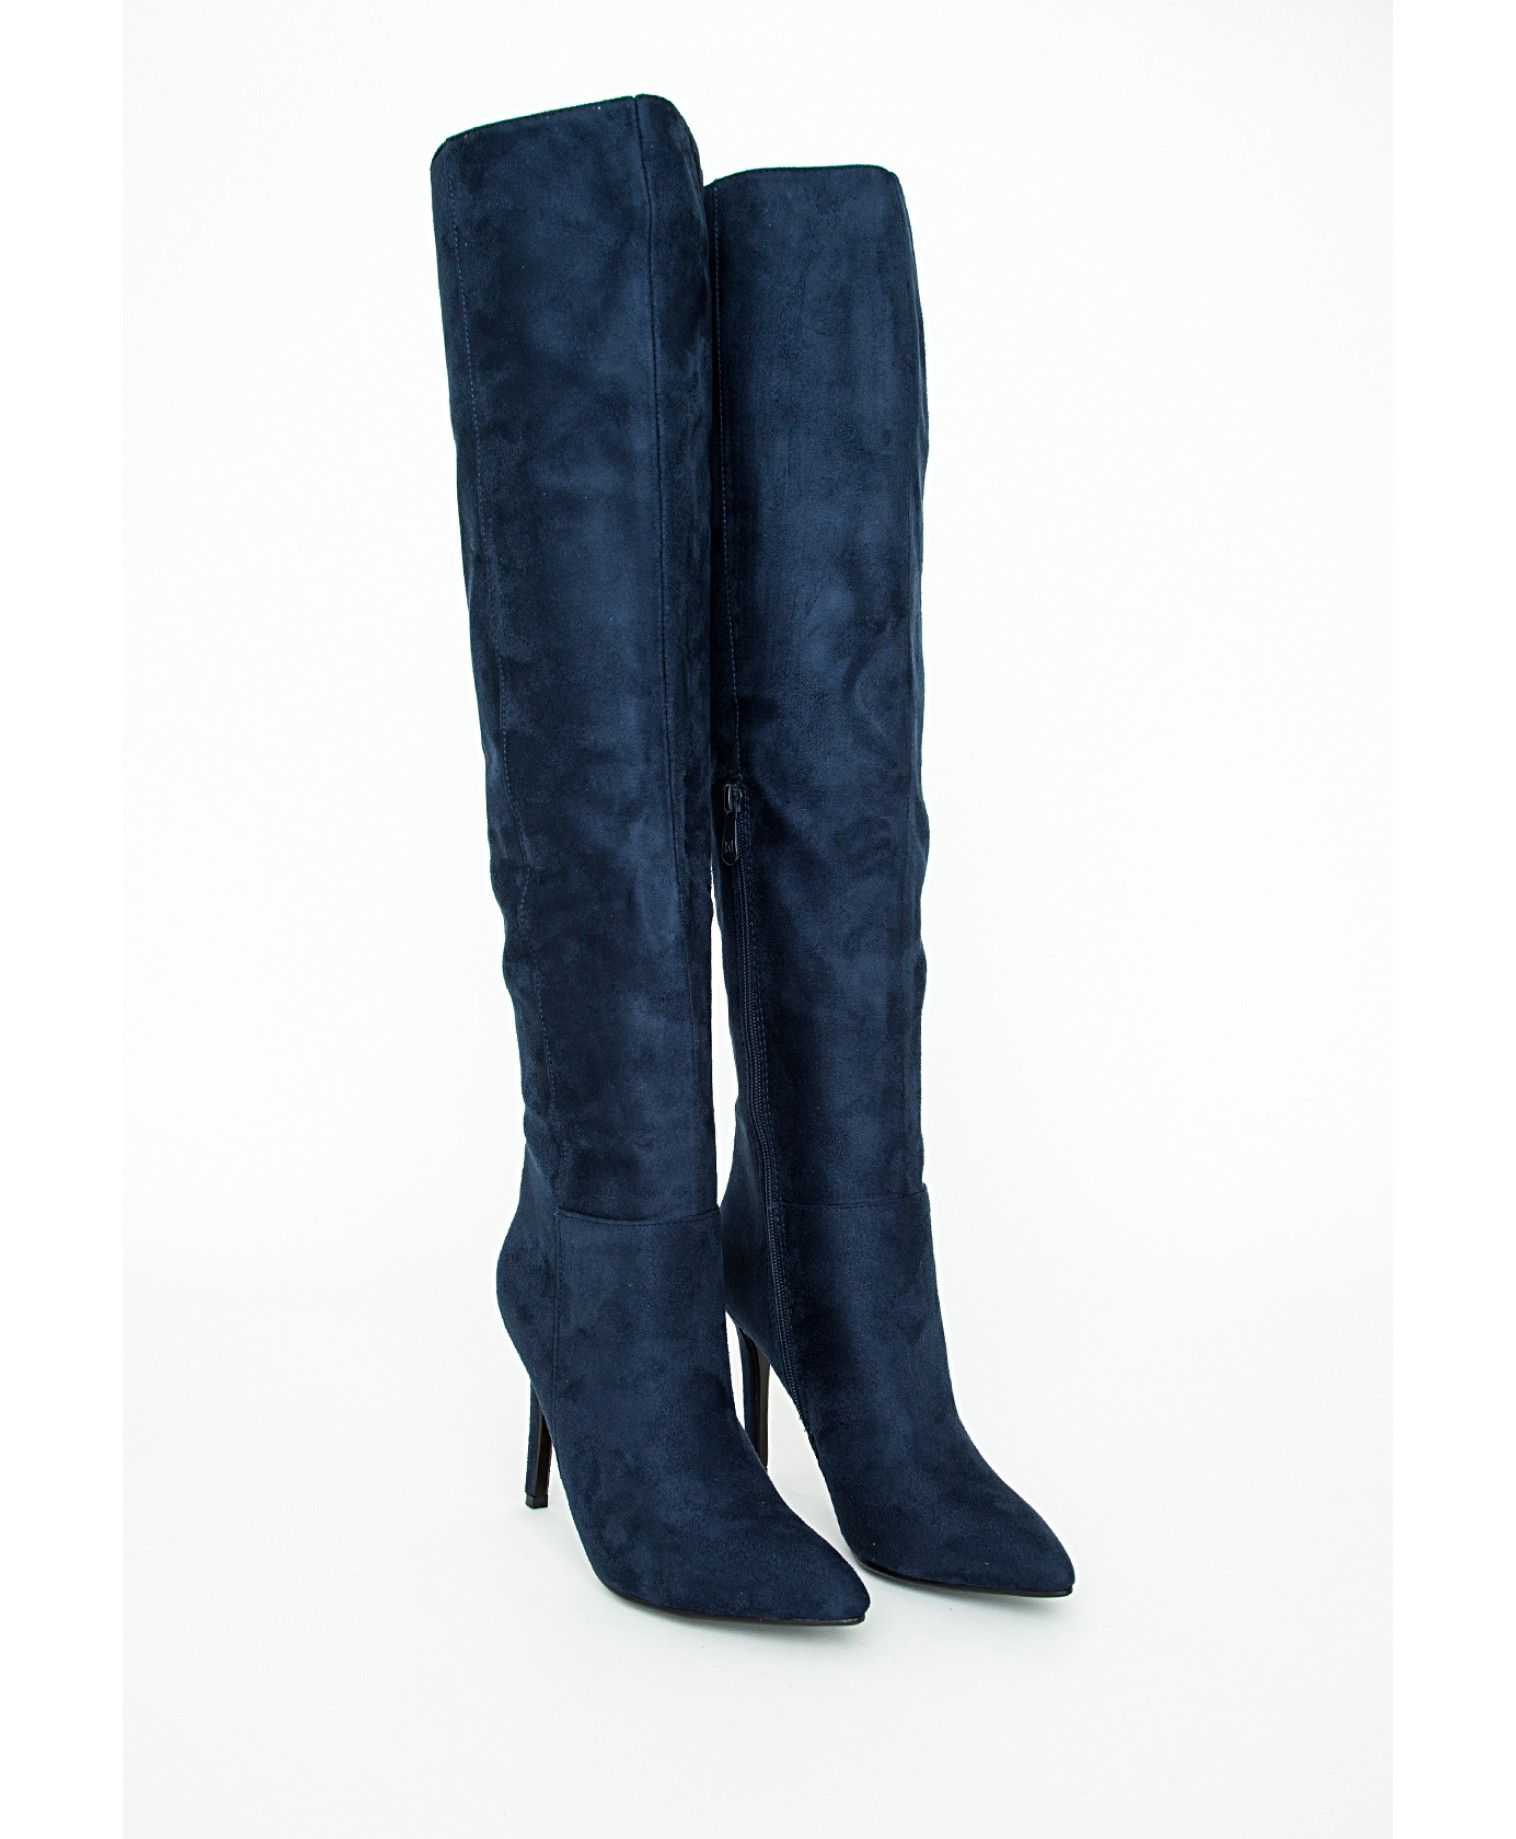 missguided knee high stiletto heeled boots navy in blue lyst